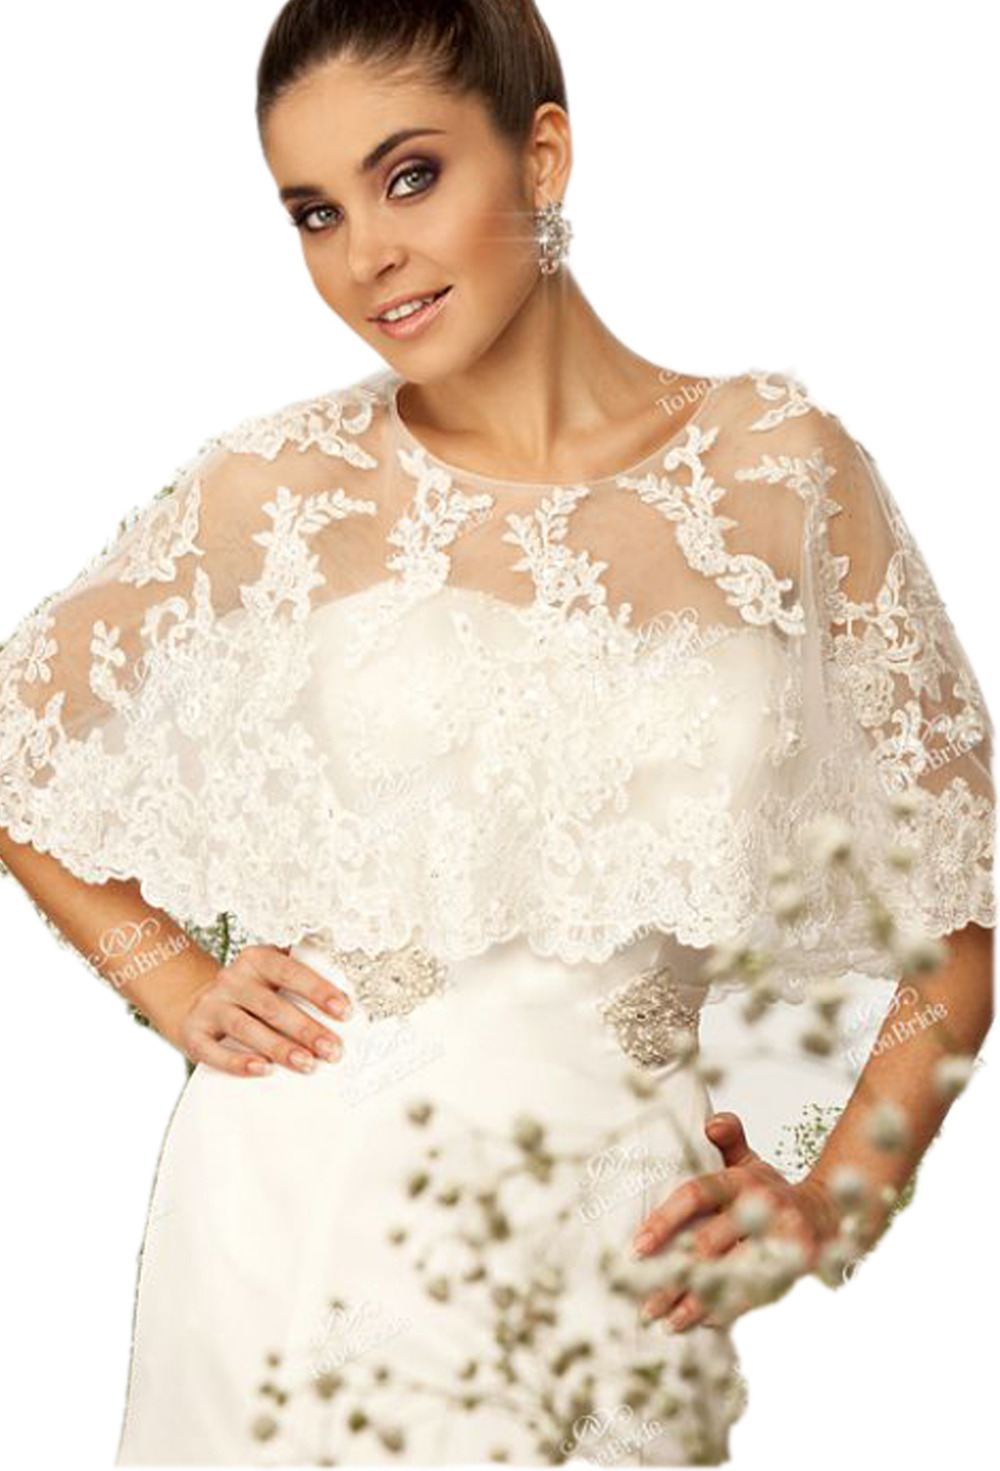 Appliqued lace white wedding bridal boleros wedding jacket for Womens dress jacket wedding